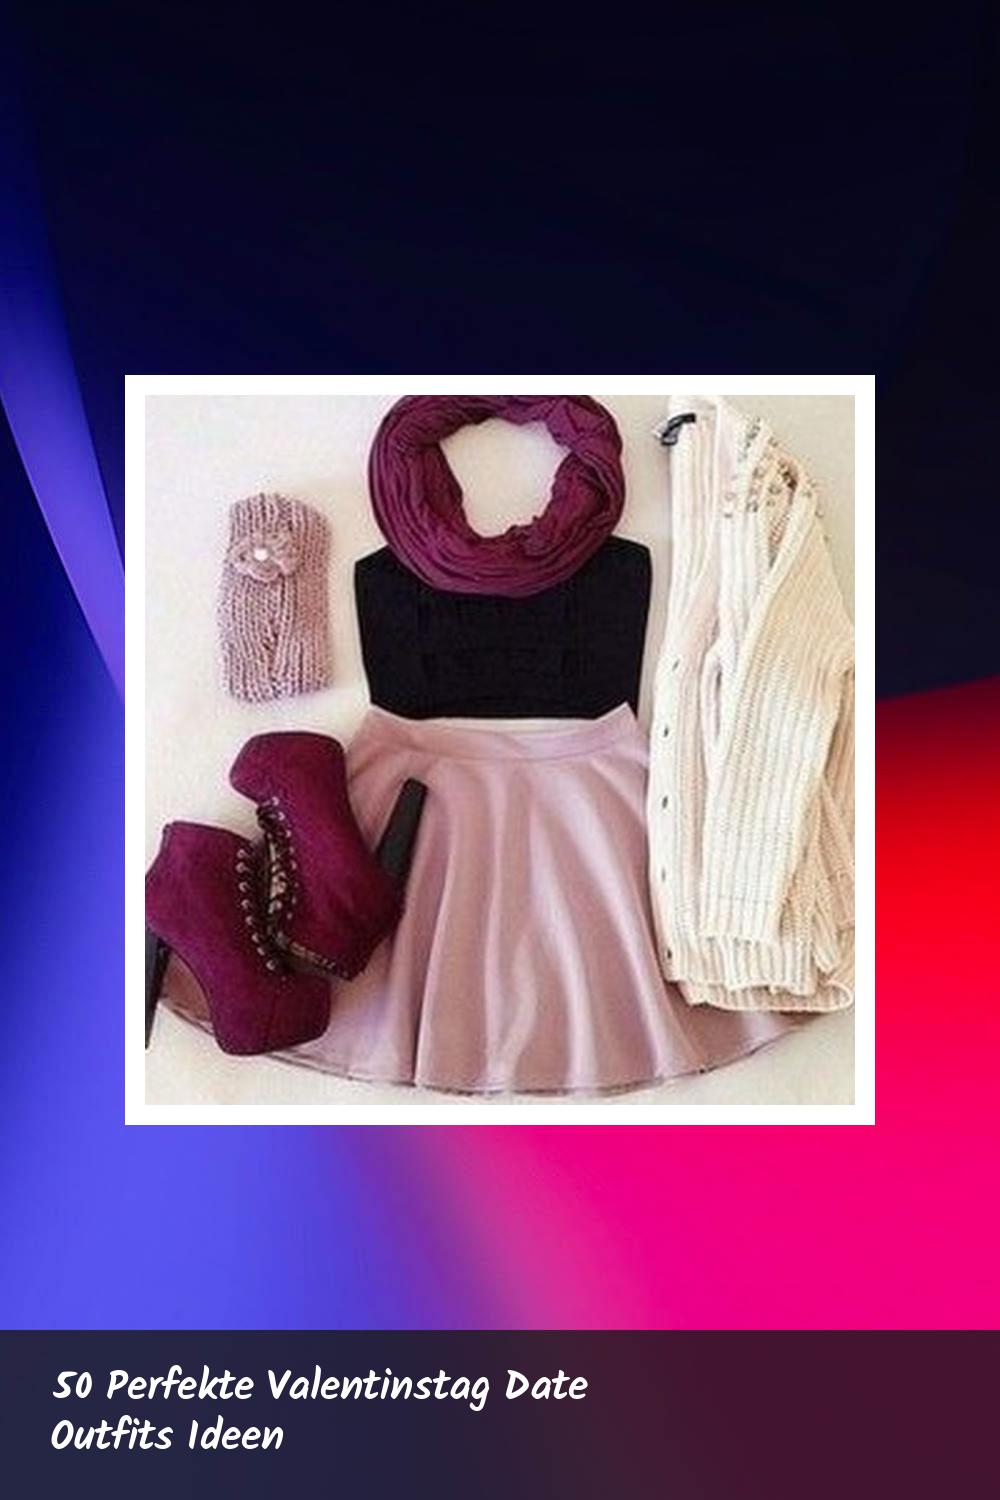 50 Perfekte Valentinstag Date Outfits Ideen 2